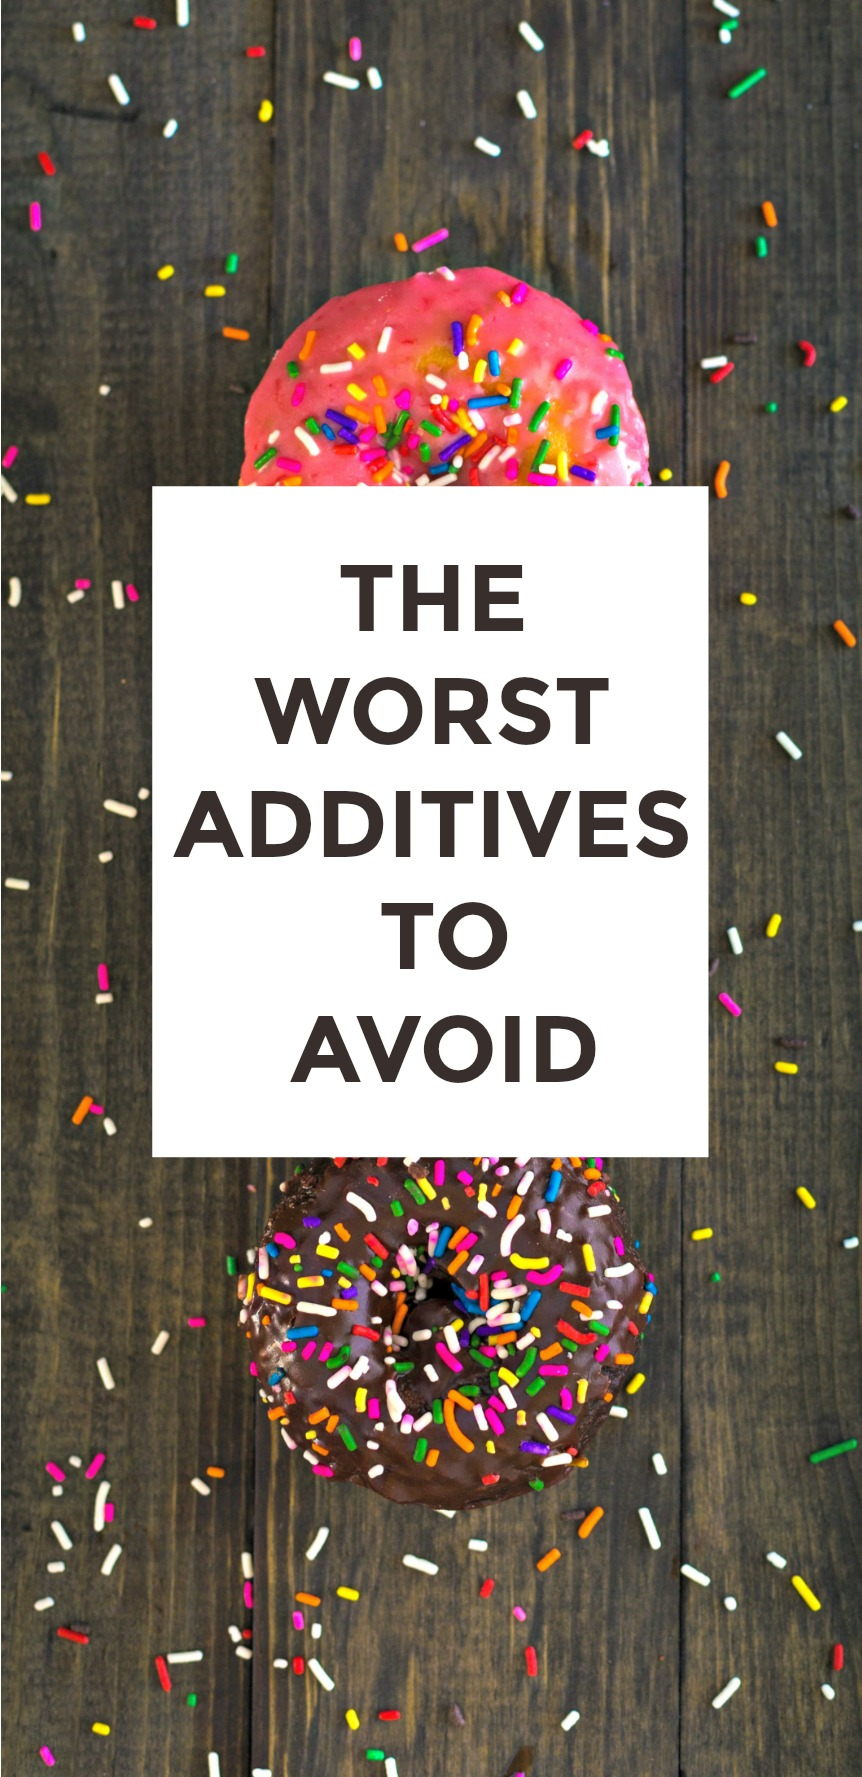 Top Additives To Avoid